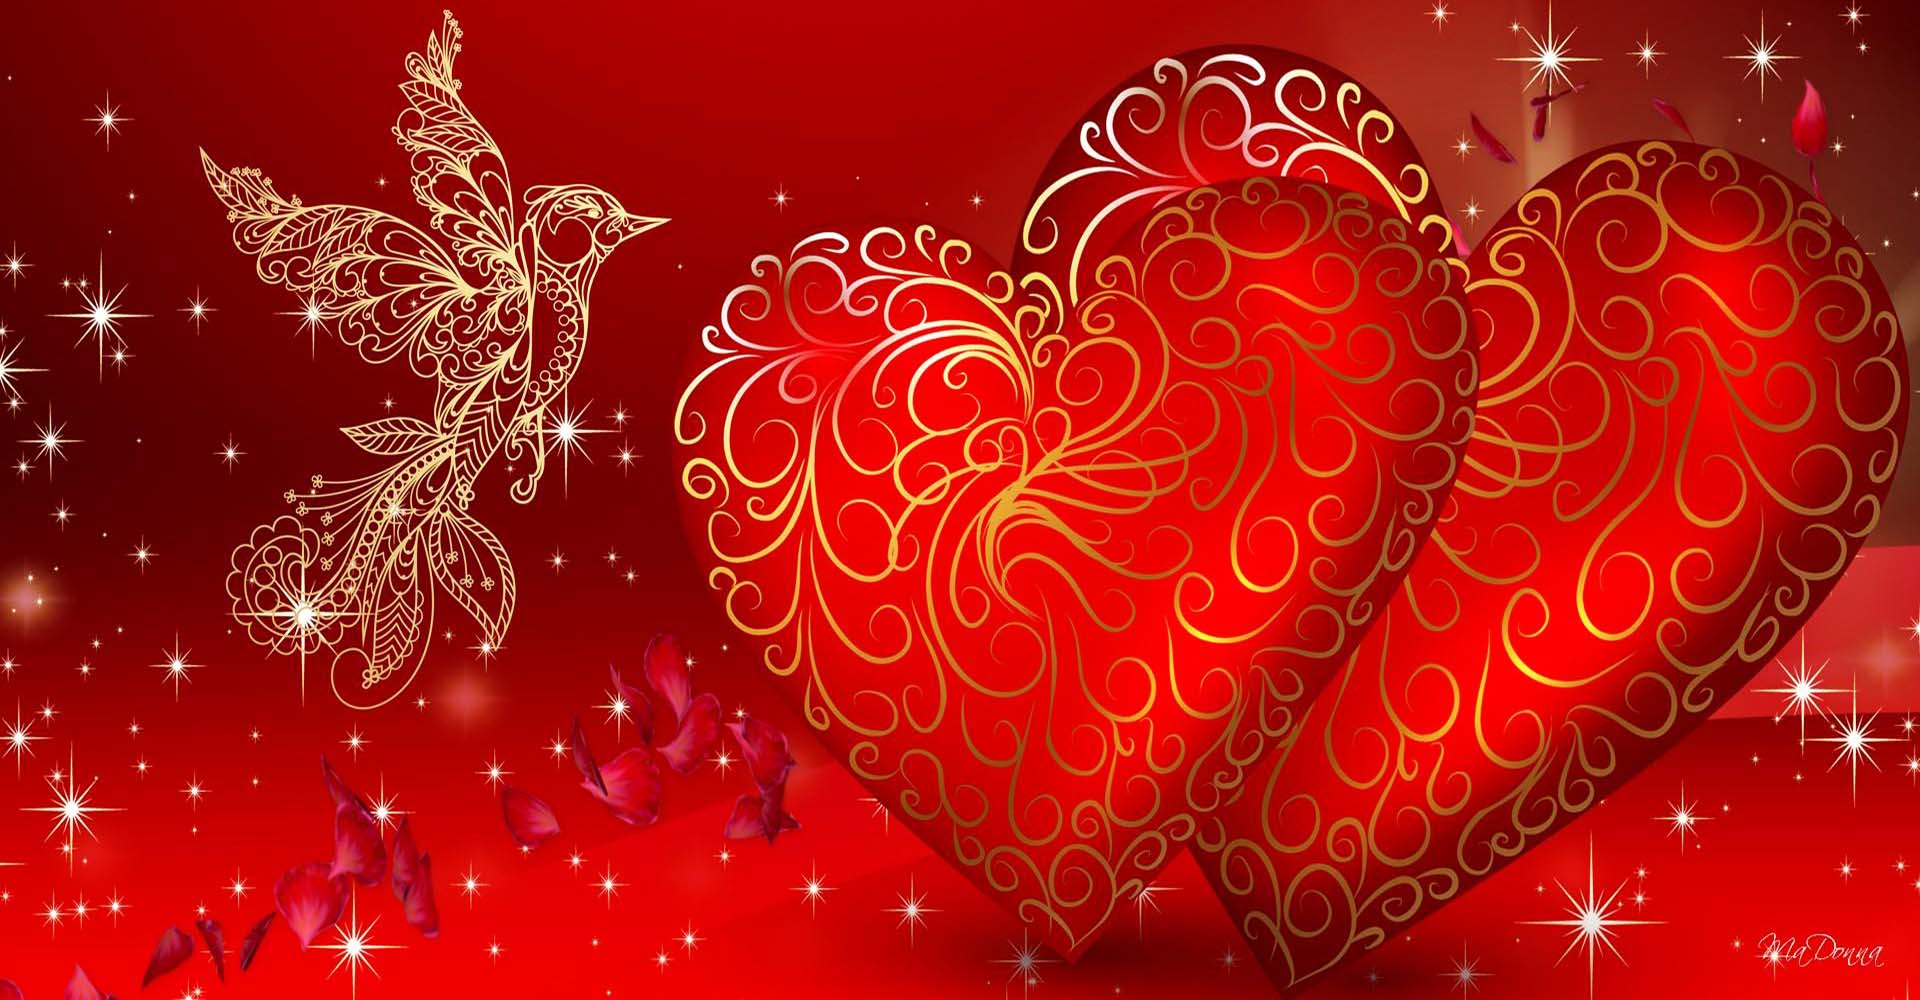 3d Heart Love Wallpapers 4852 Wallpaper: Love Heart Wallpapers 2016